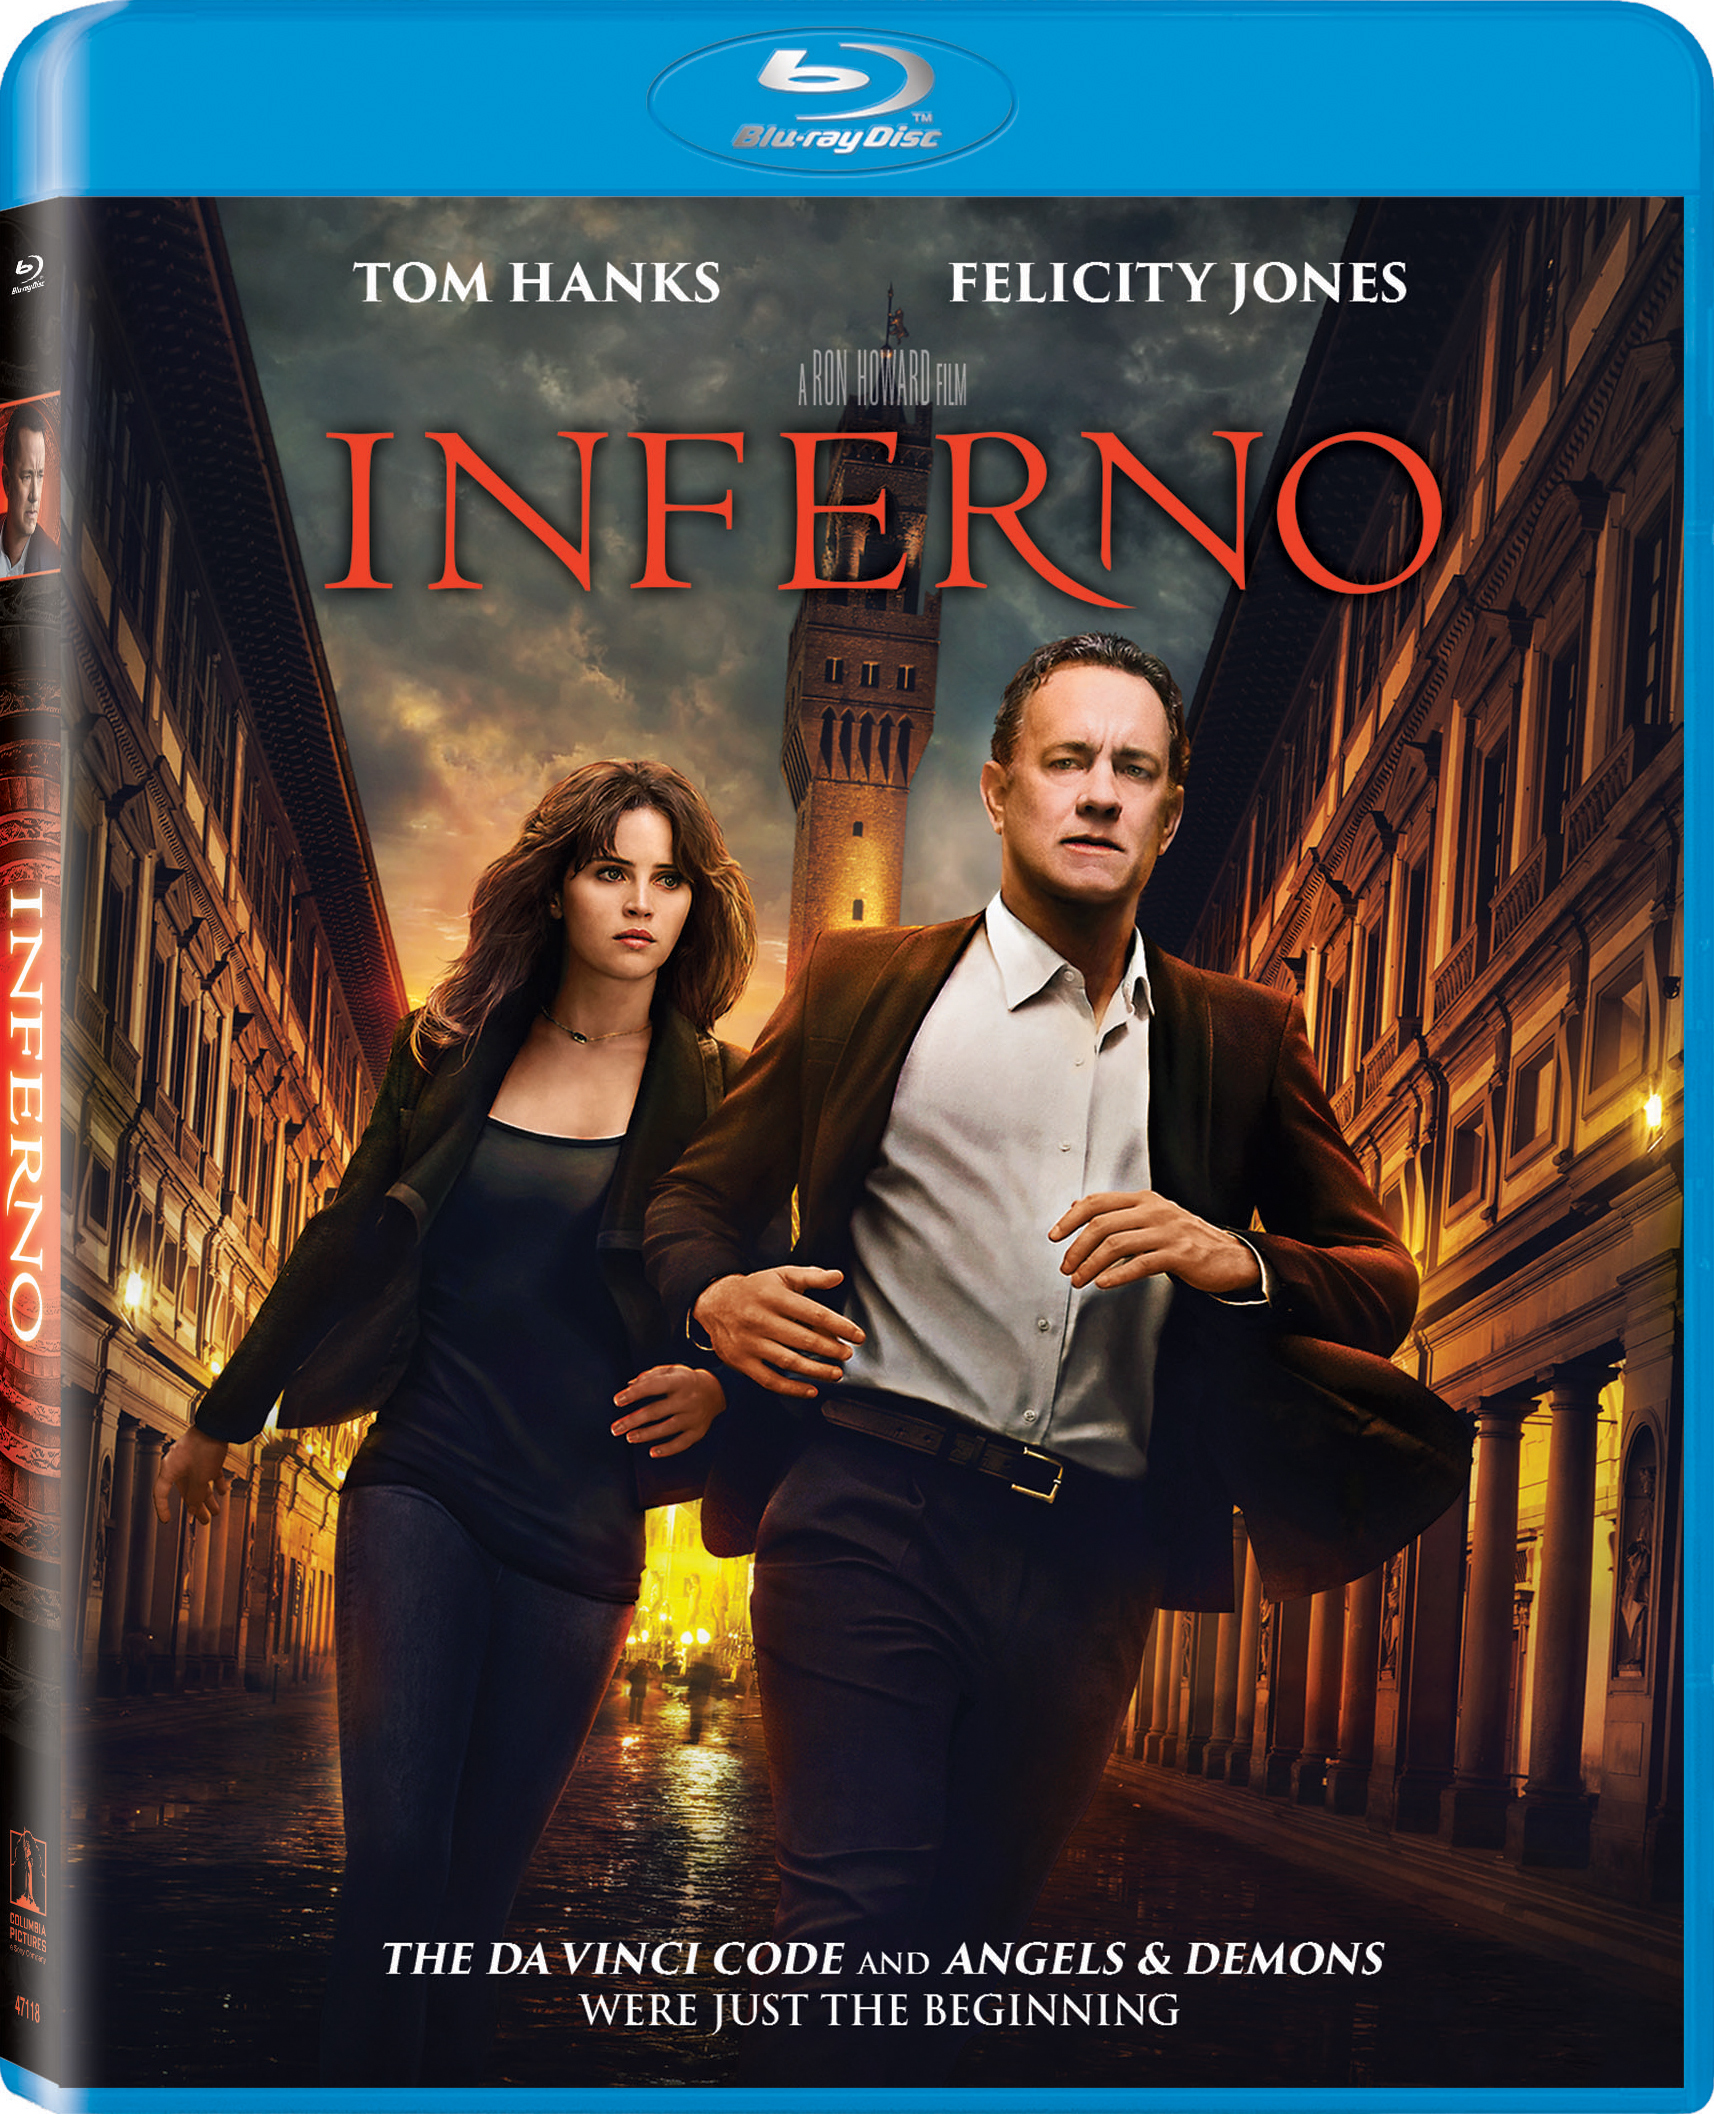 Inferno (2016) poster image